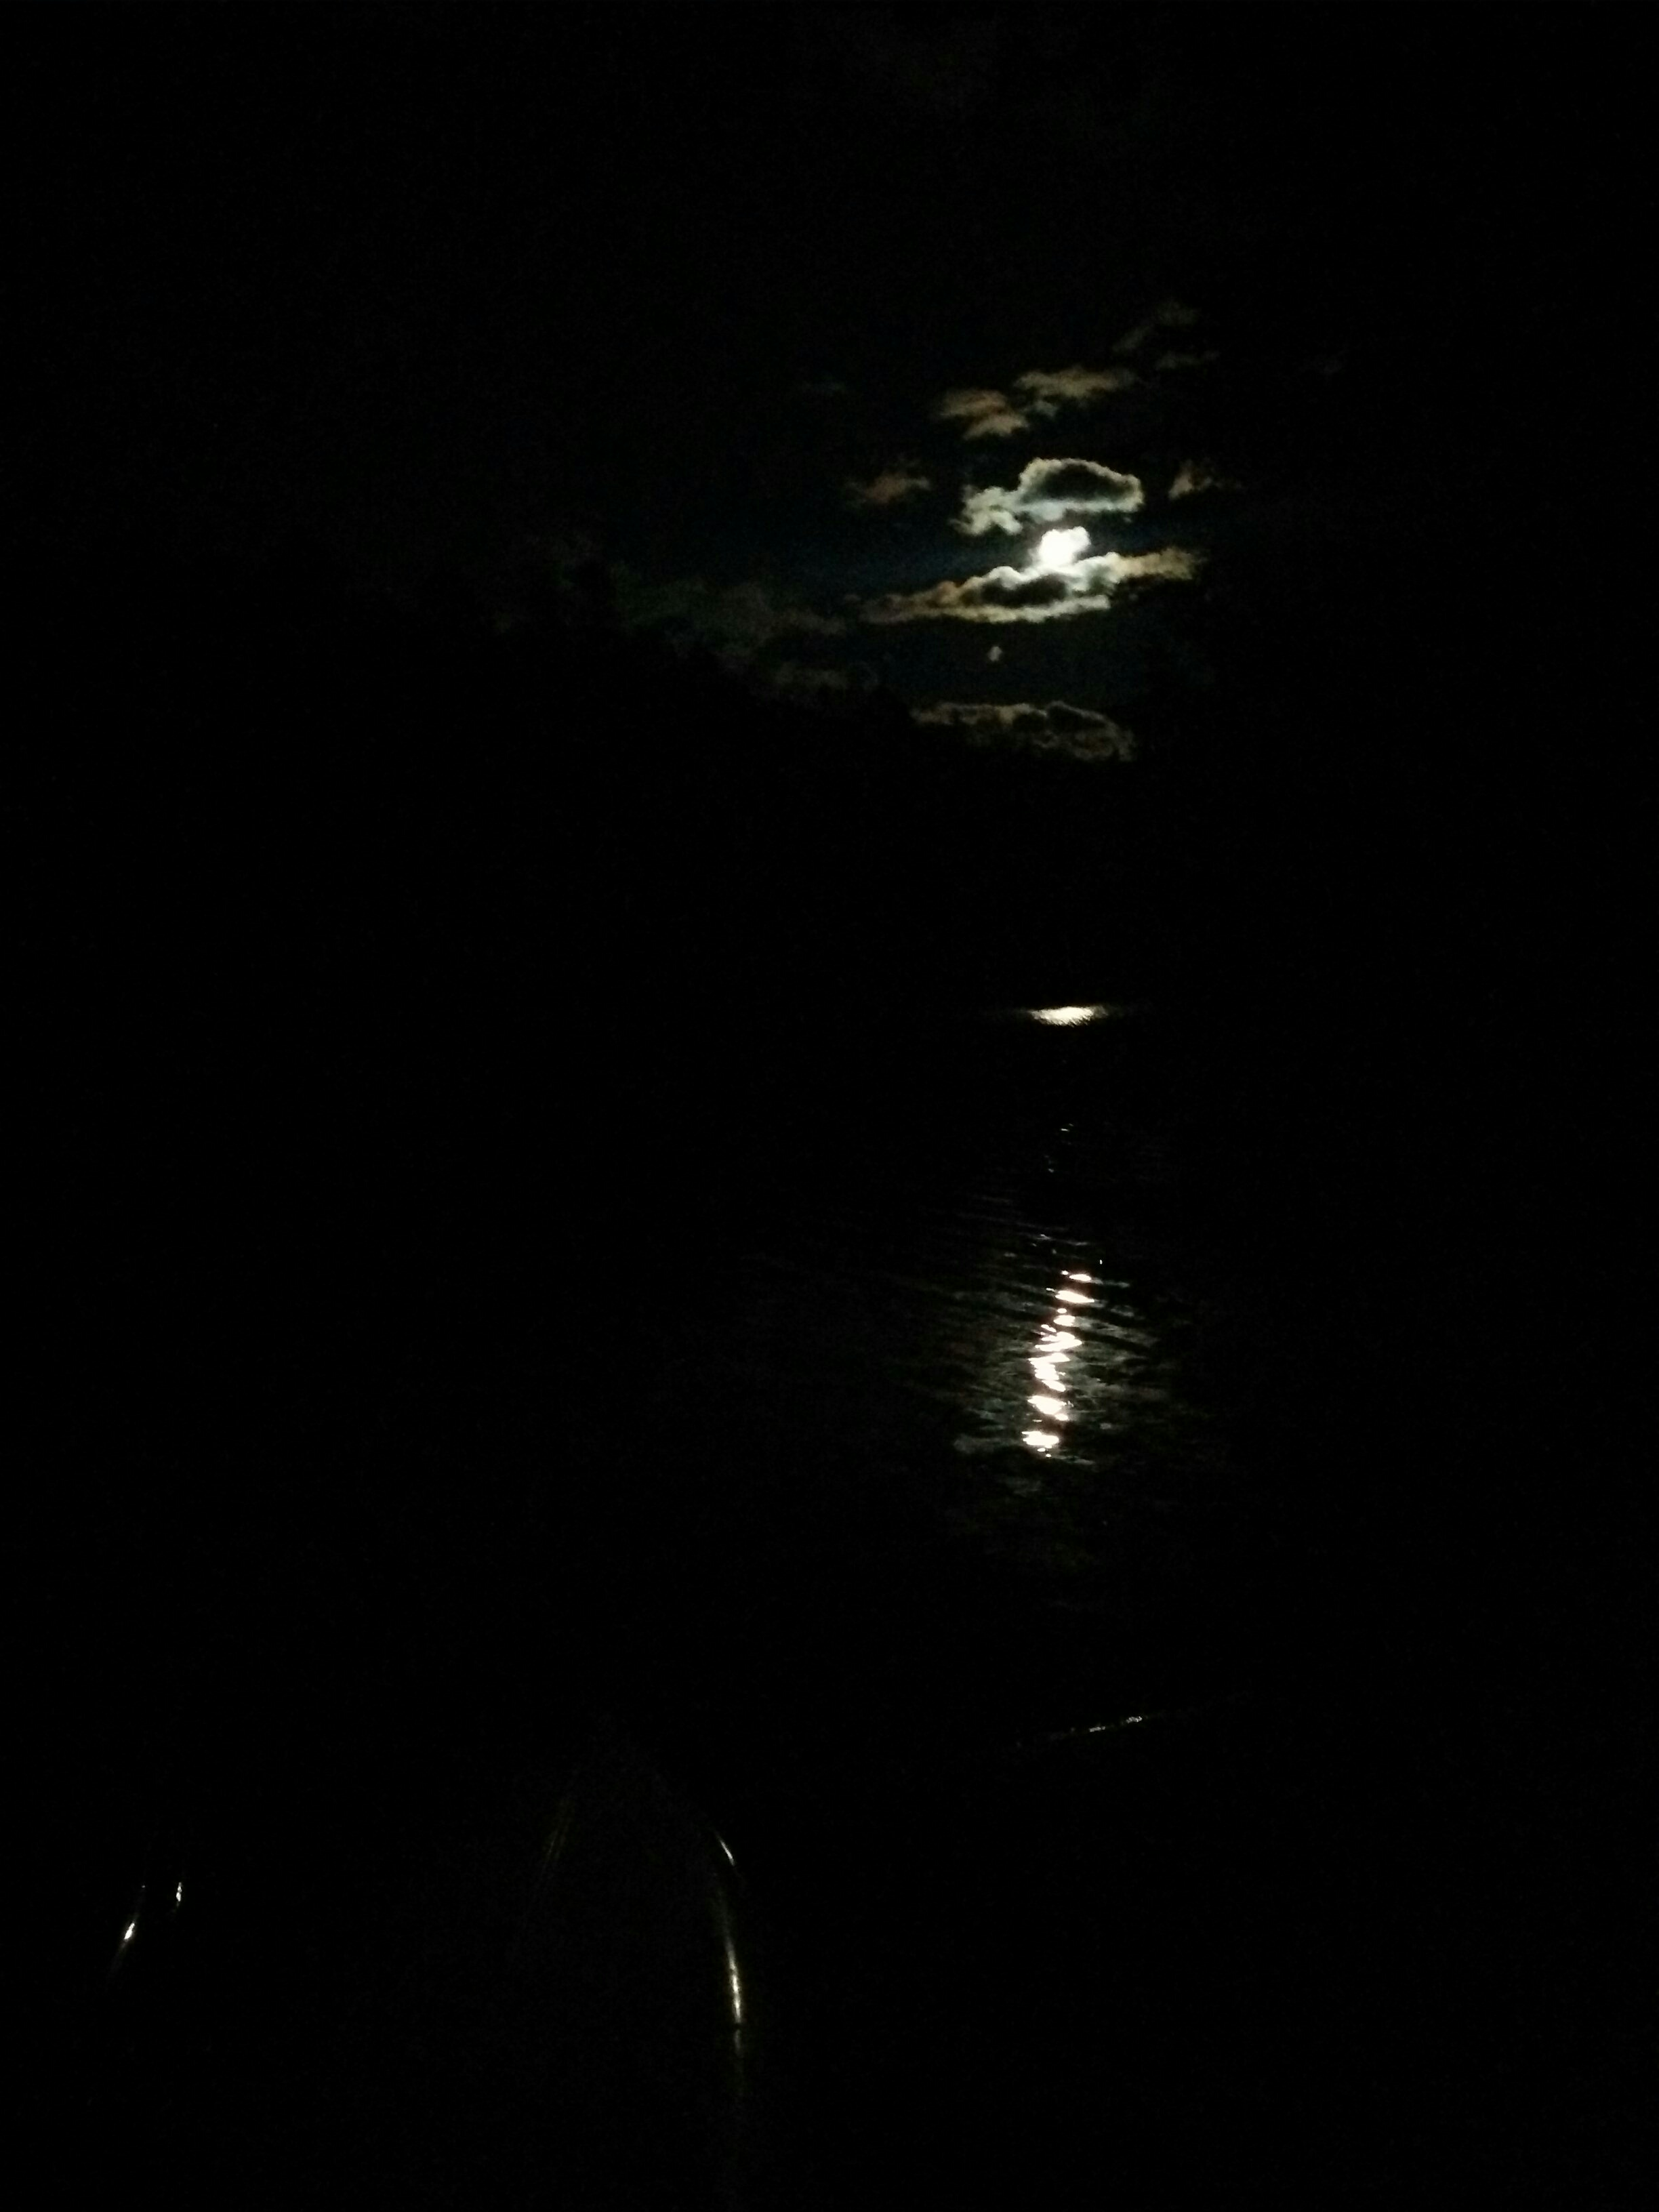 By the light of the moon... or headlamp